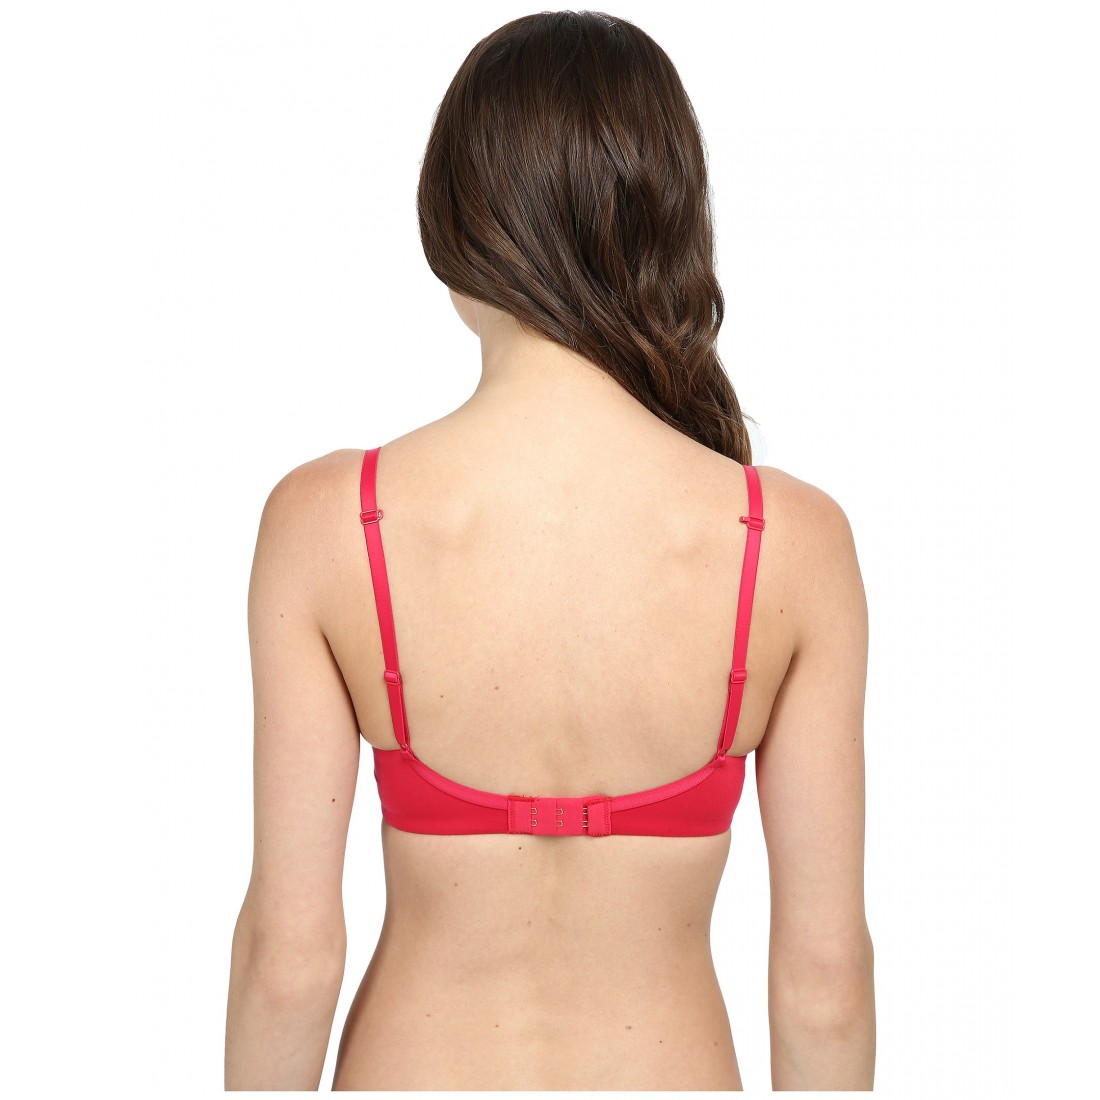 d1c5edf726 Betsey Johnson Forever Perfect Demi Bra 723800 6PM8408455 Red Hot